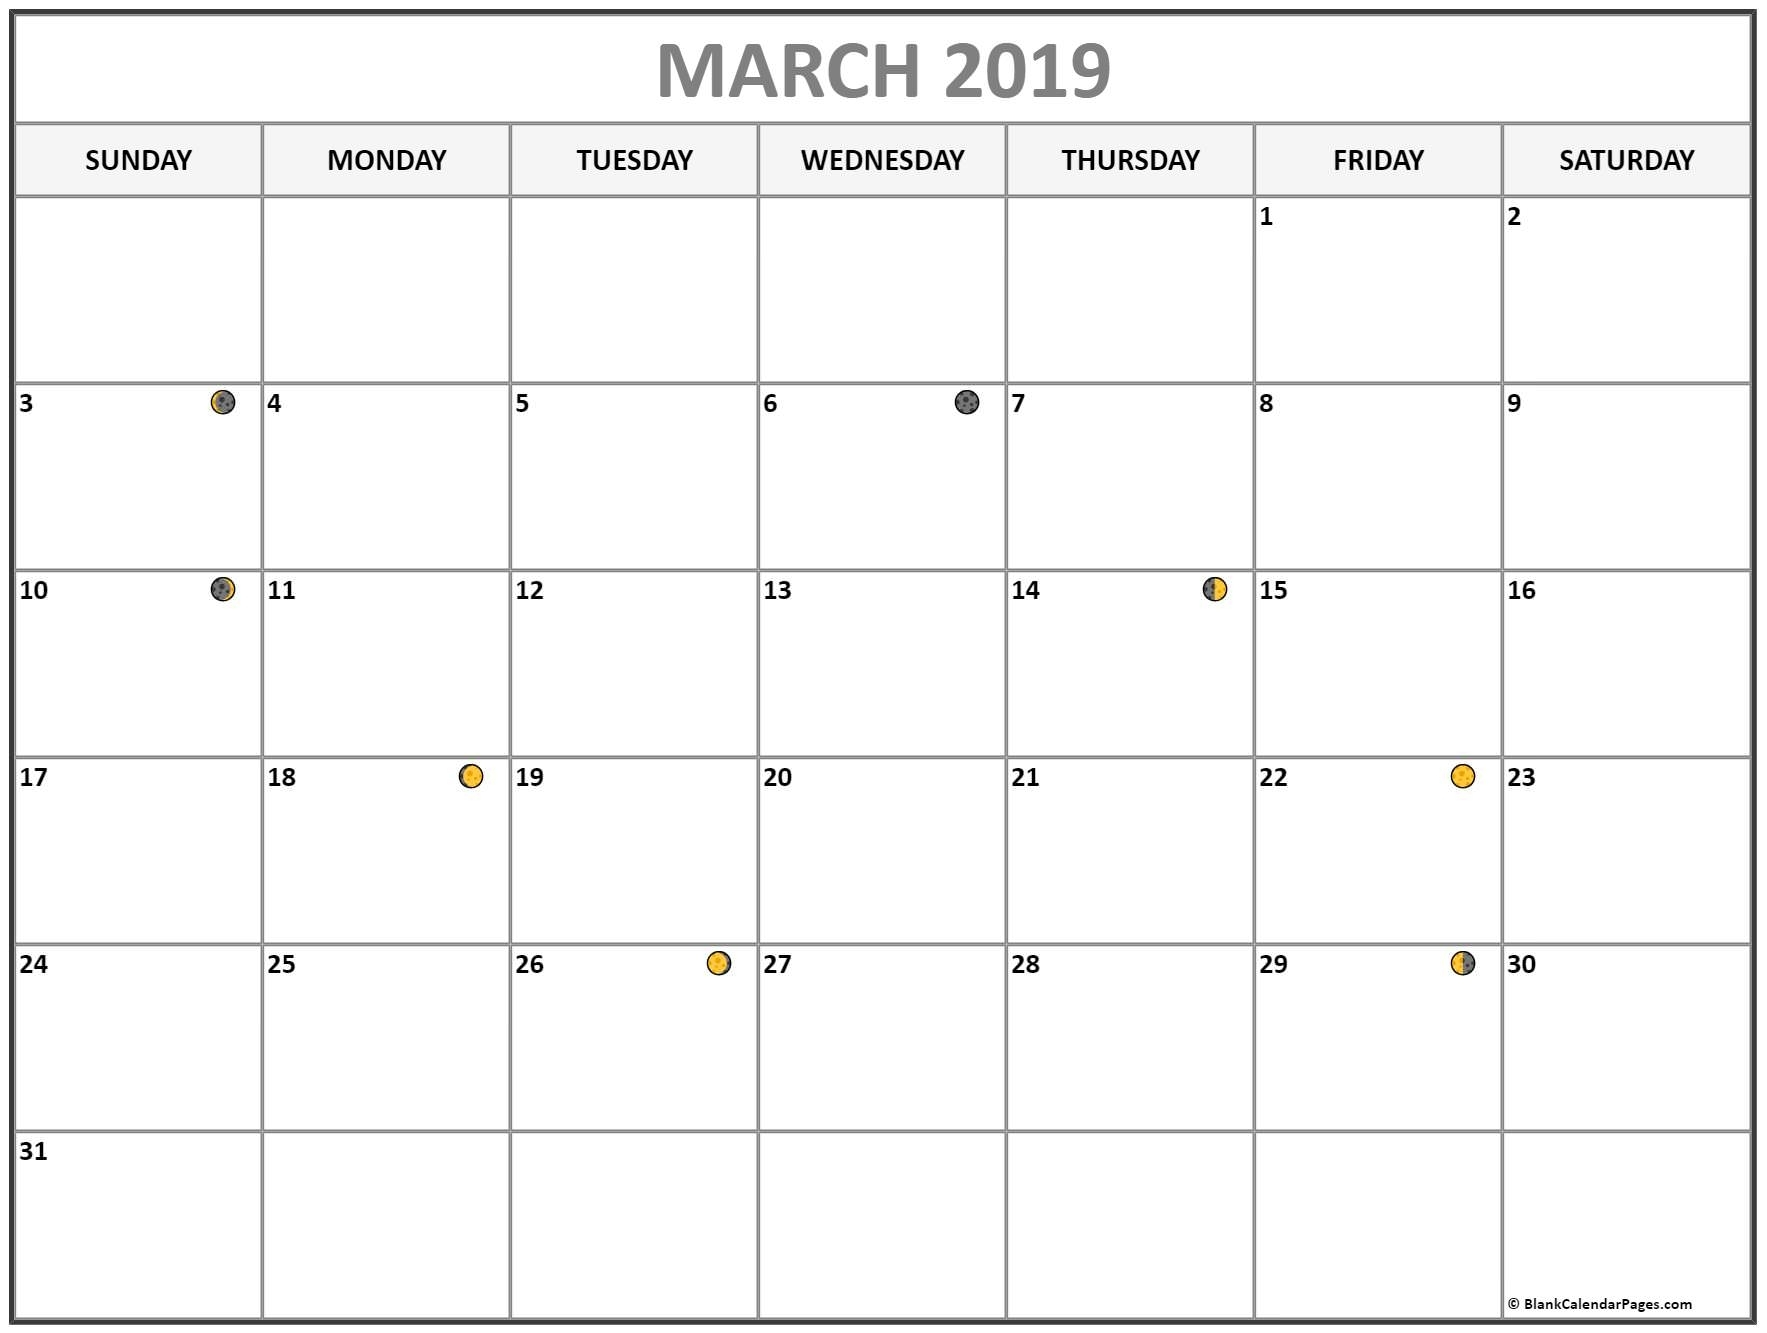 March 2019 New Moon Calendar